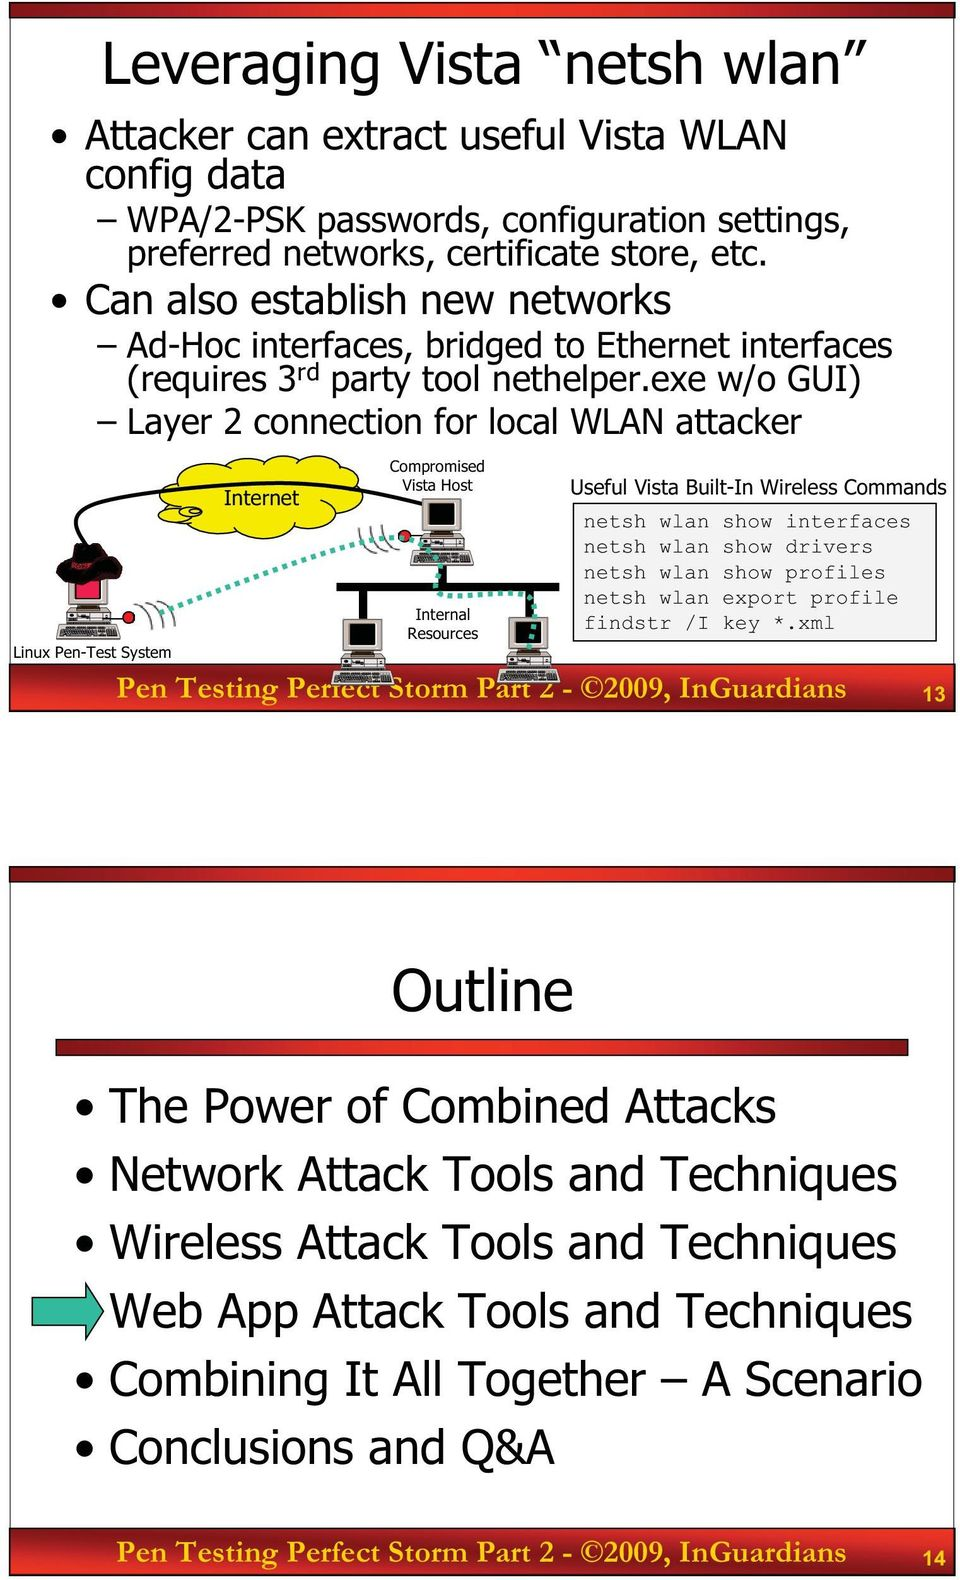 The Pen Test Perfect Storm: Combining Network, Web App, and Wireless